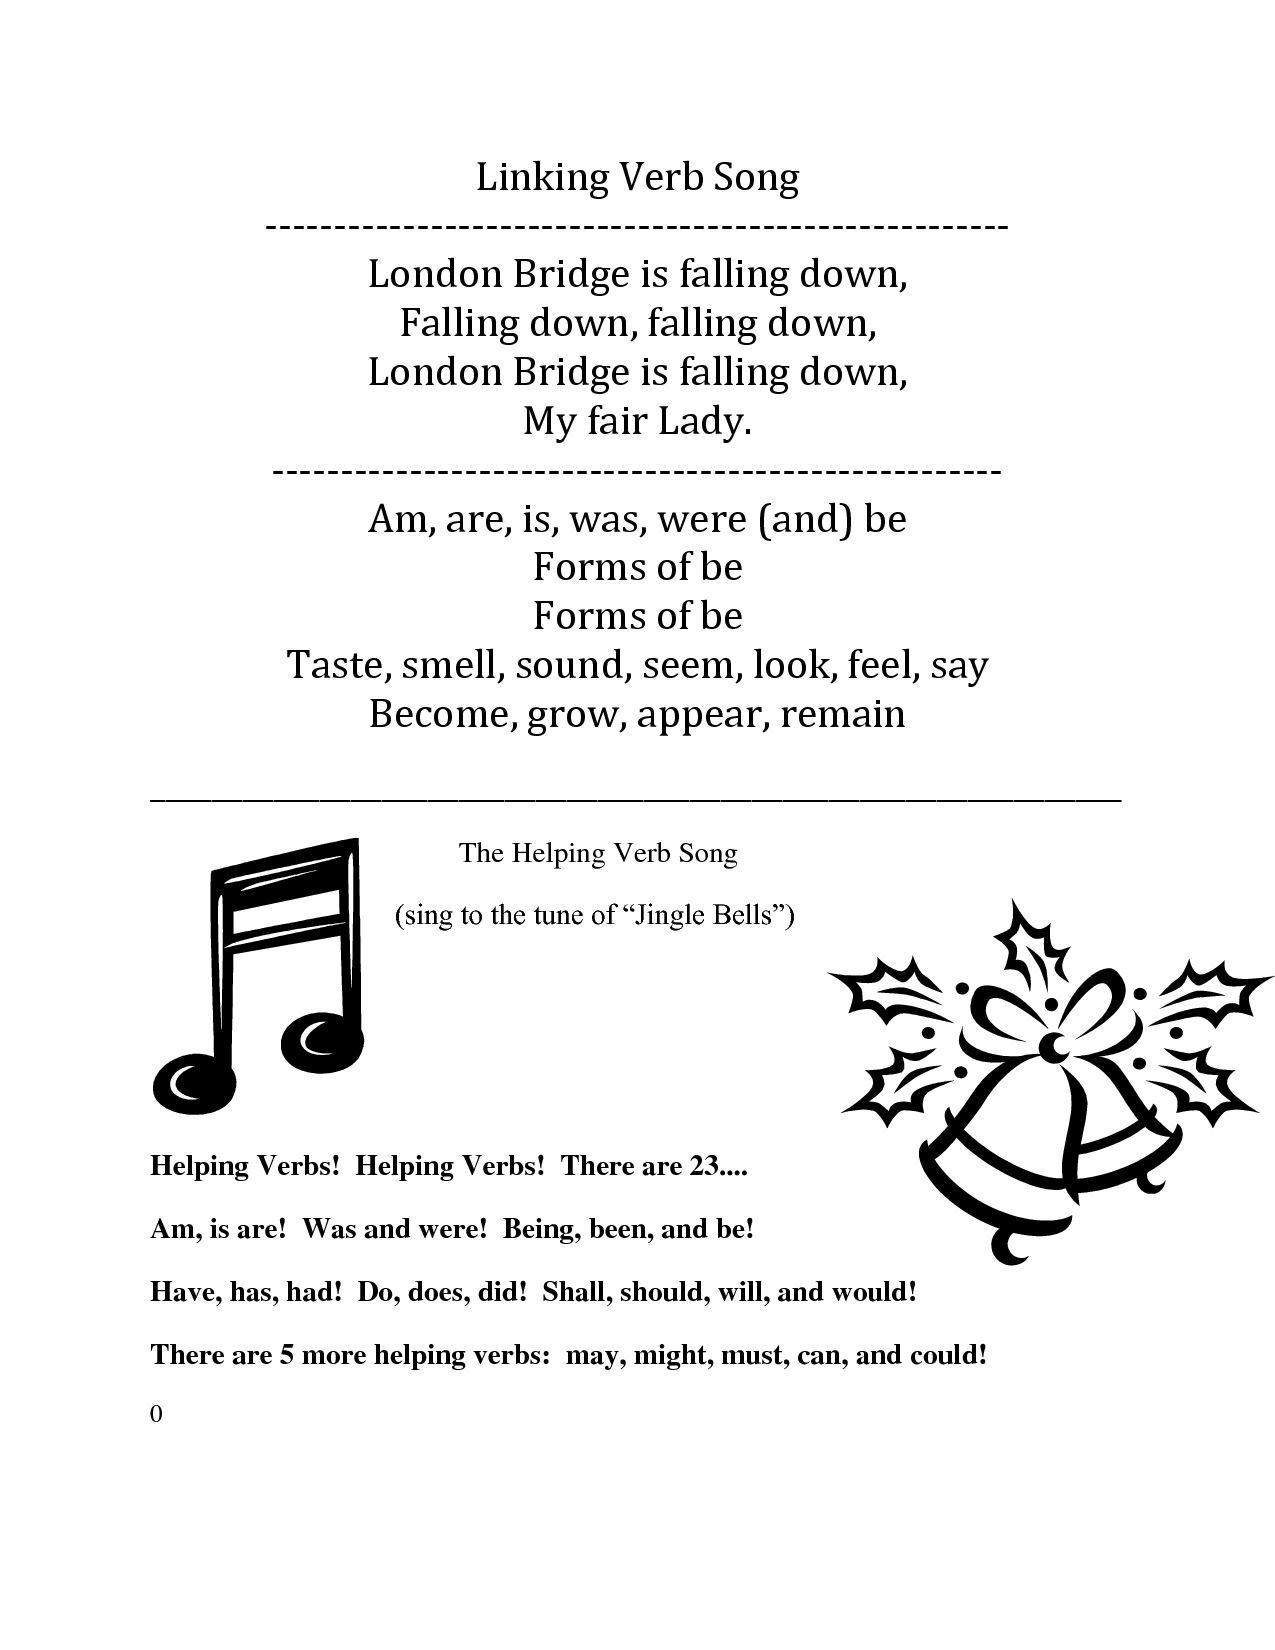 hight resolution of Linking Verb Song lyrics (to London Bridge is falling down) And Helping Verb  Song (to Jingle Bells)   Linking verbs